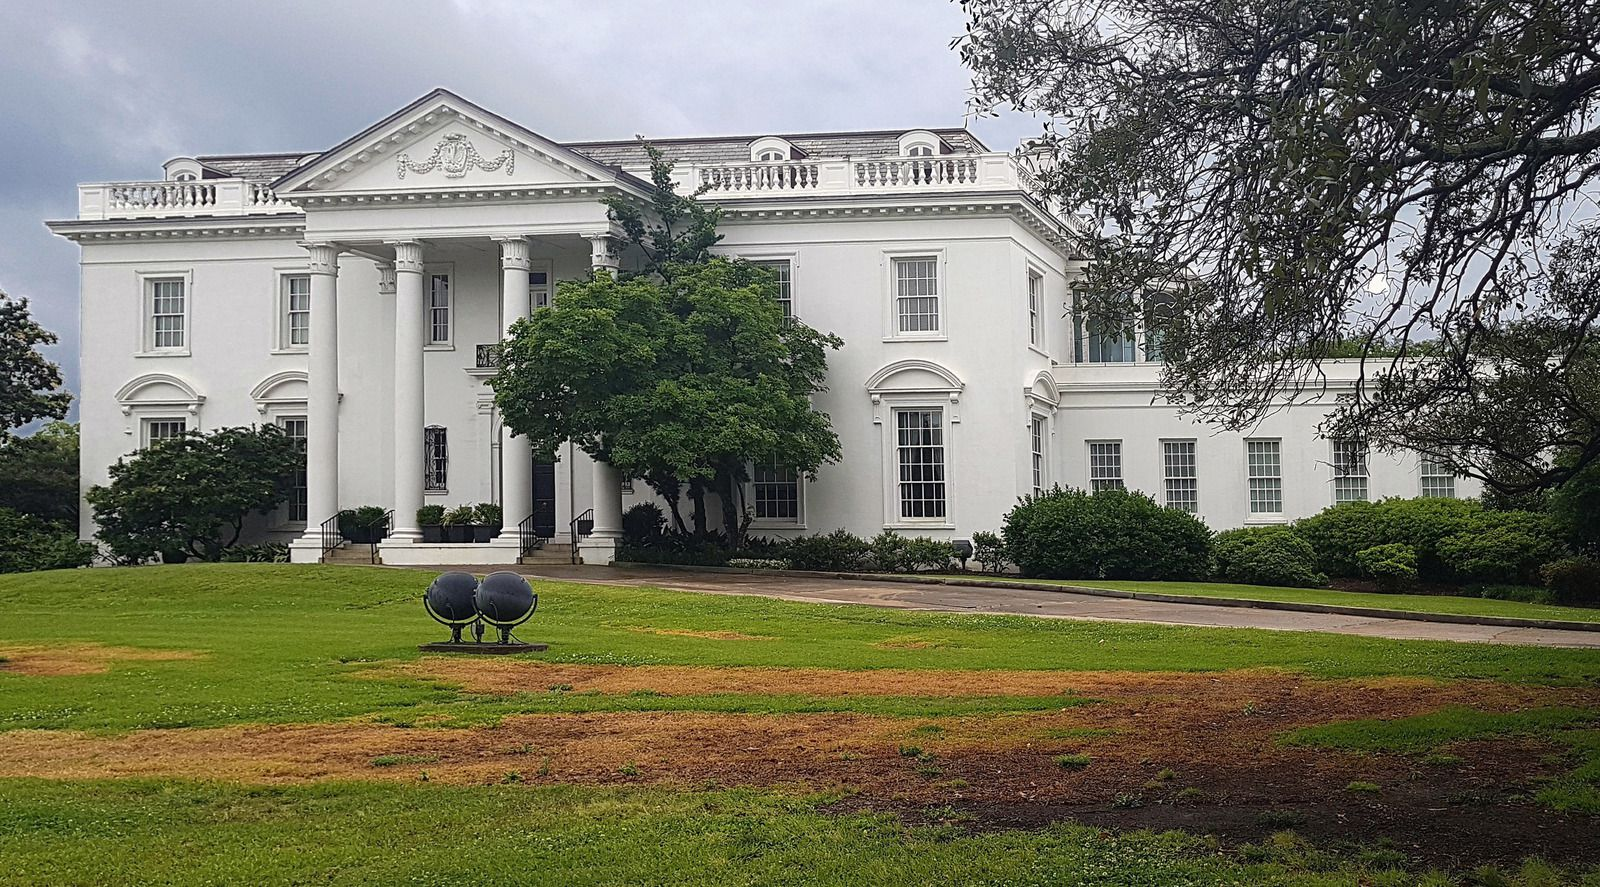 Baton Rouge Governor's Mansion